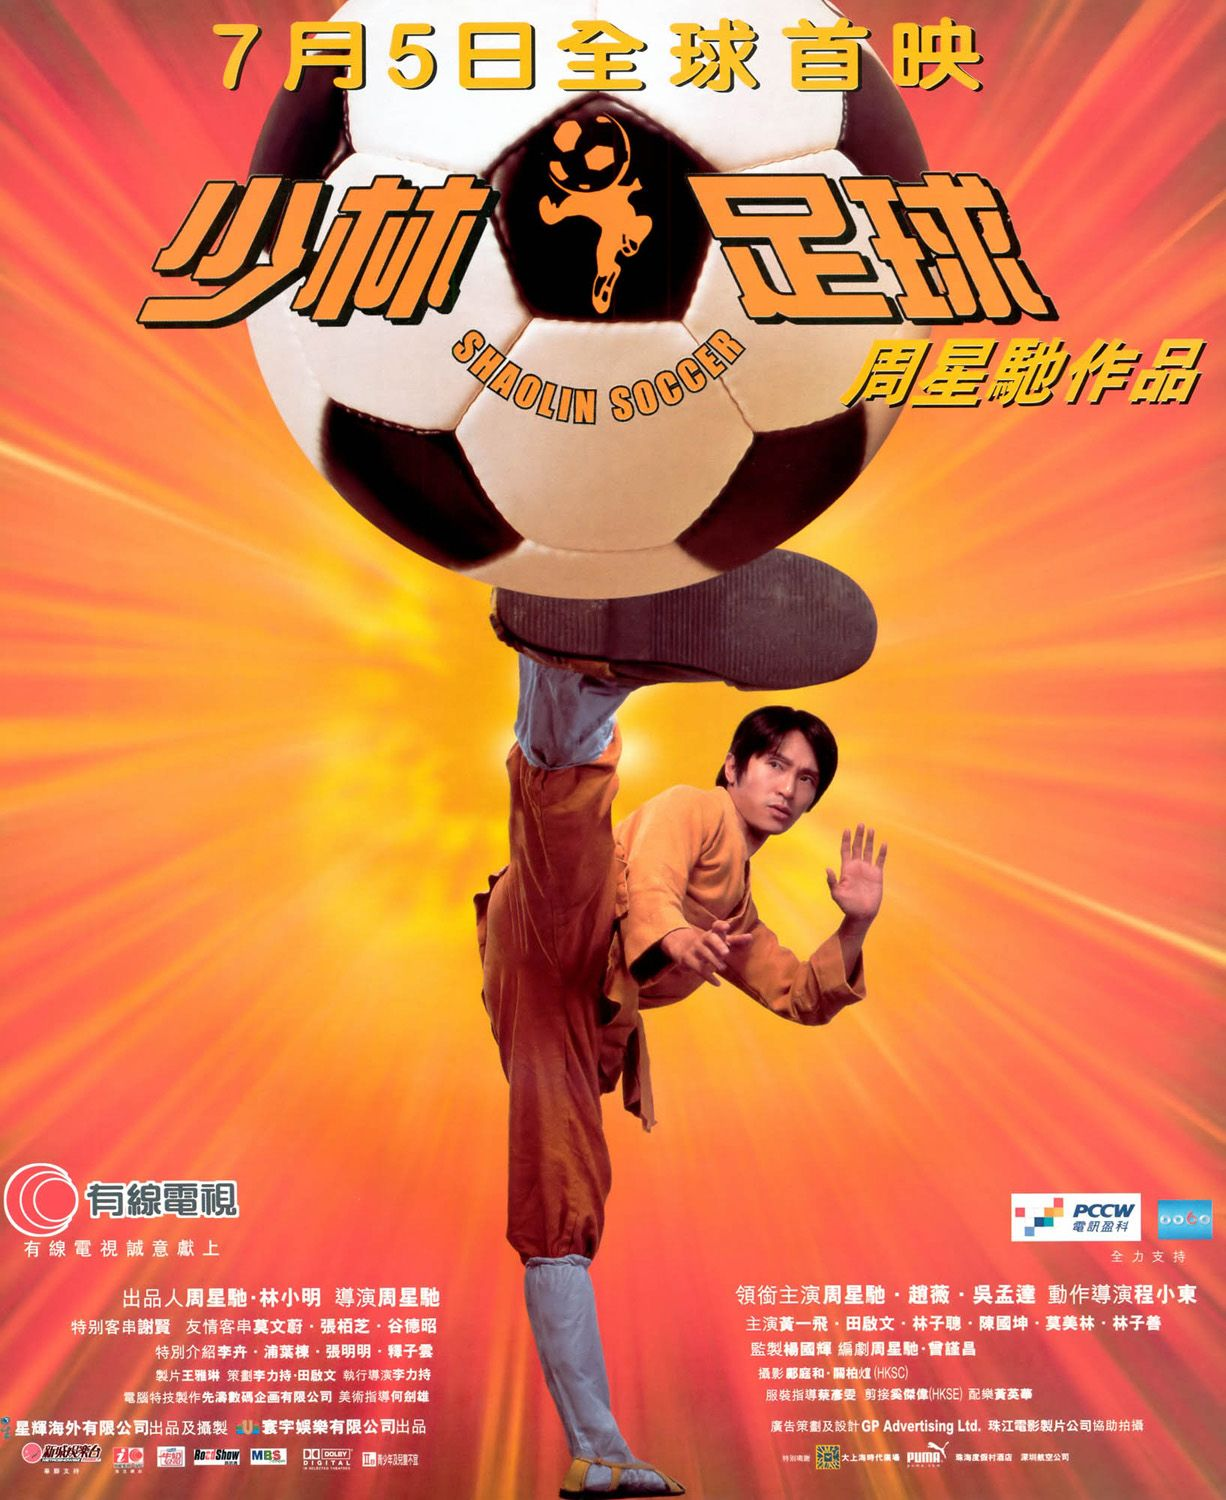 shaolin soccer full movie in tamil free download 720p